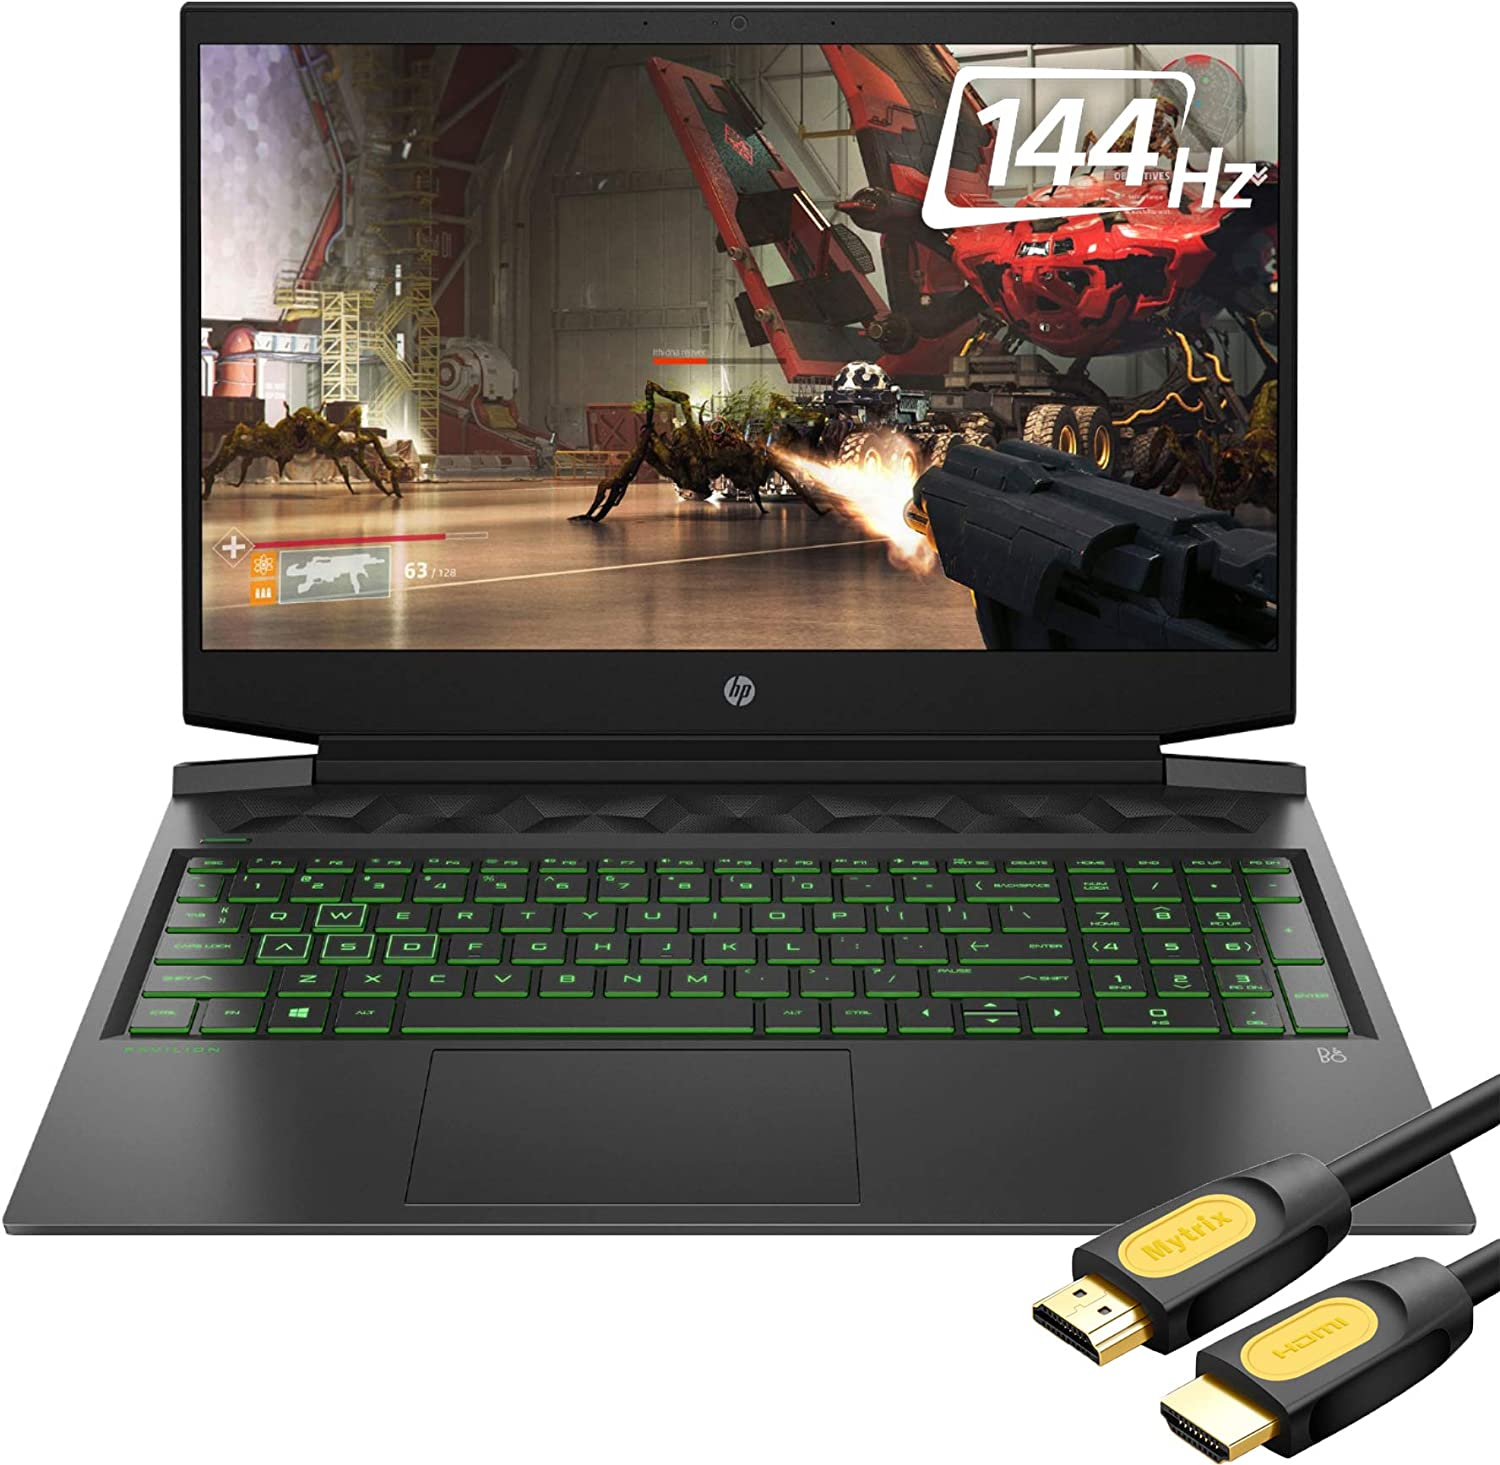 "HP Pavilion VR Ready 144 Hz Gaming Laptop, 16.1"" FHD IPS, Core i5-10300H 4-Core up to 4.50 GHz, GTX 1660Ti, 32GB RAM, 1TB SSD, DP 1.4/HDMI 2.0, RJ-45, Backlit KB, Mytrix HDMI Cable, Win 10"